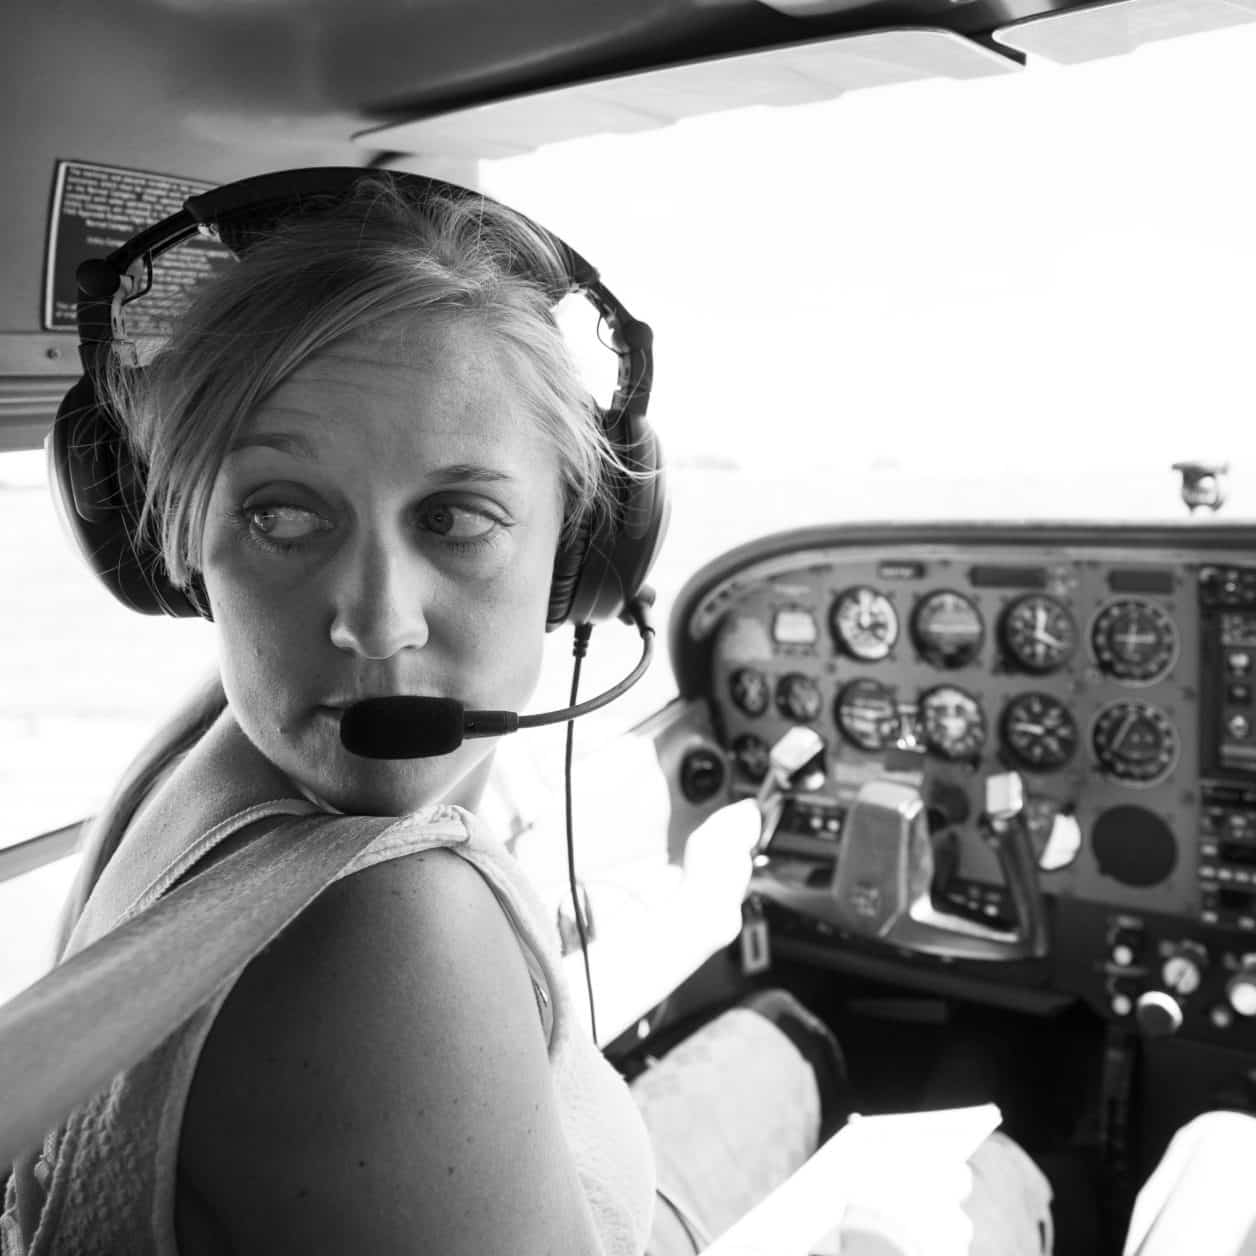 Female student, pilot, Jamie Heiam, professional pilot technology, flying